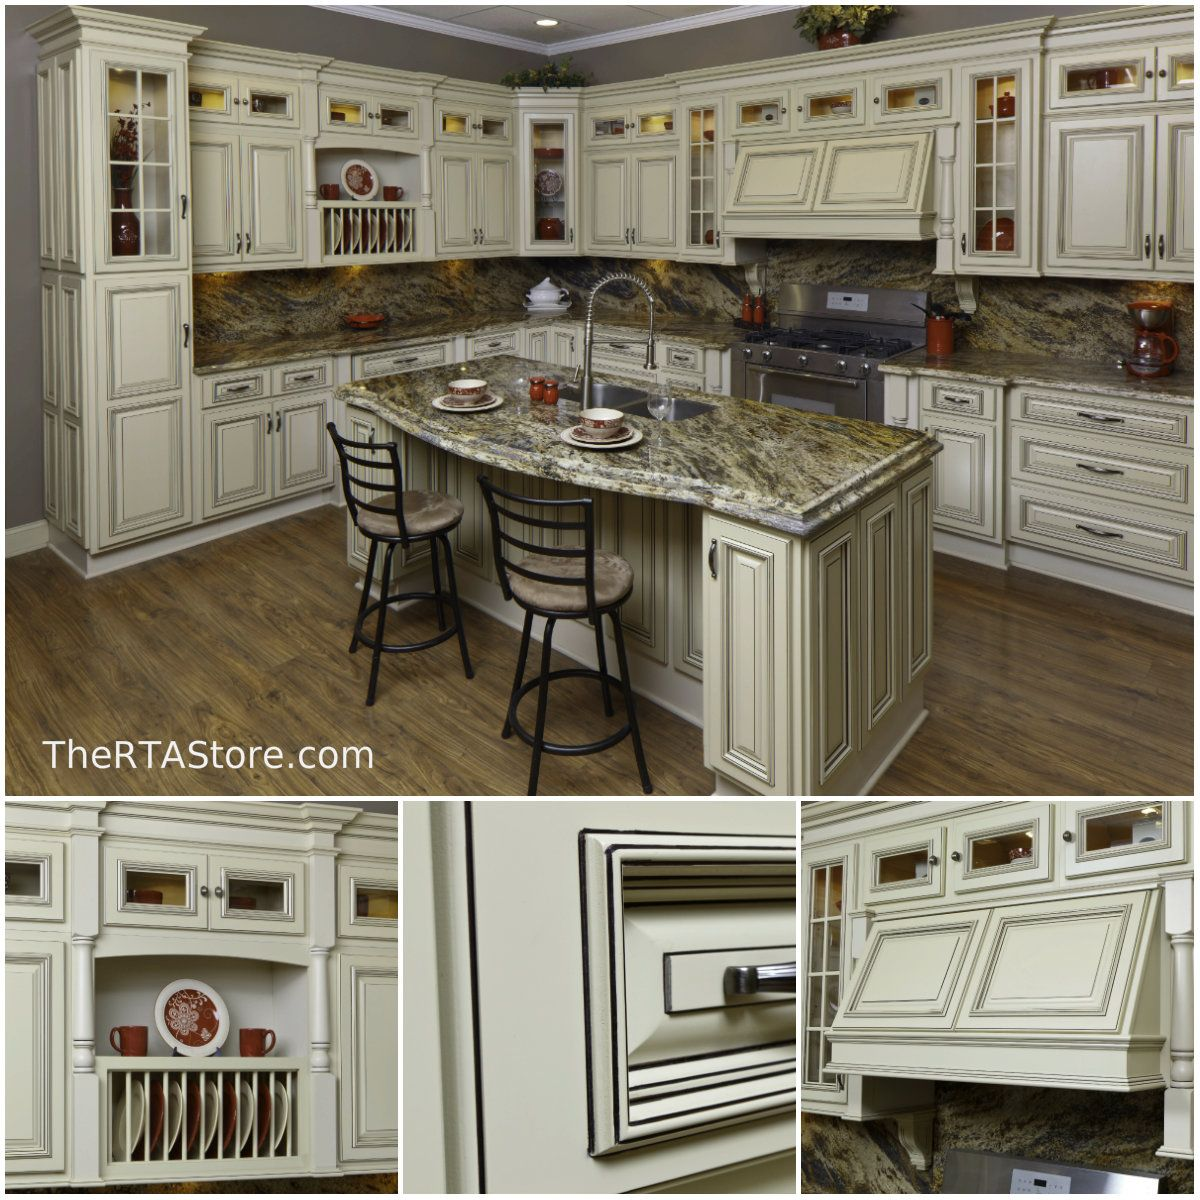 White Kitchen Cabinets Resale Value: Kitchen Of The Day: Vintage White #TheRTAStore.com